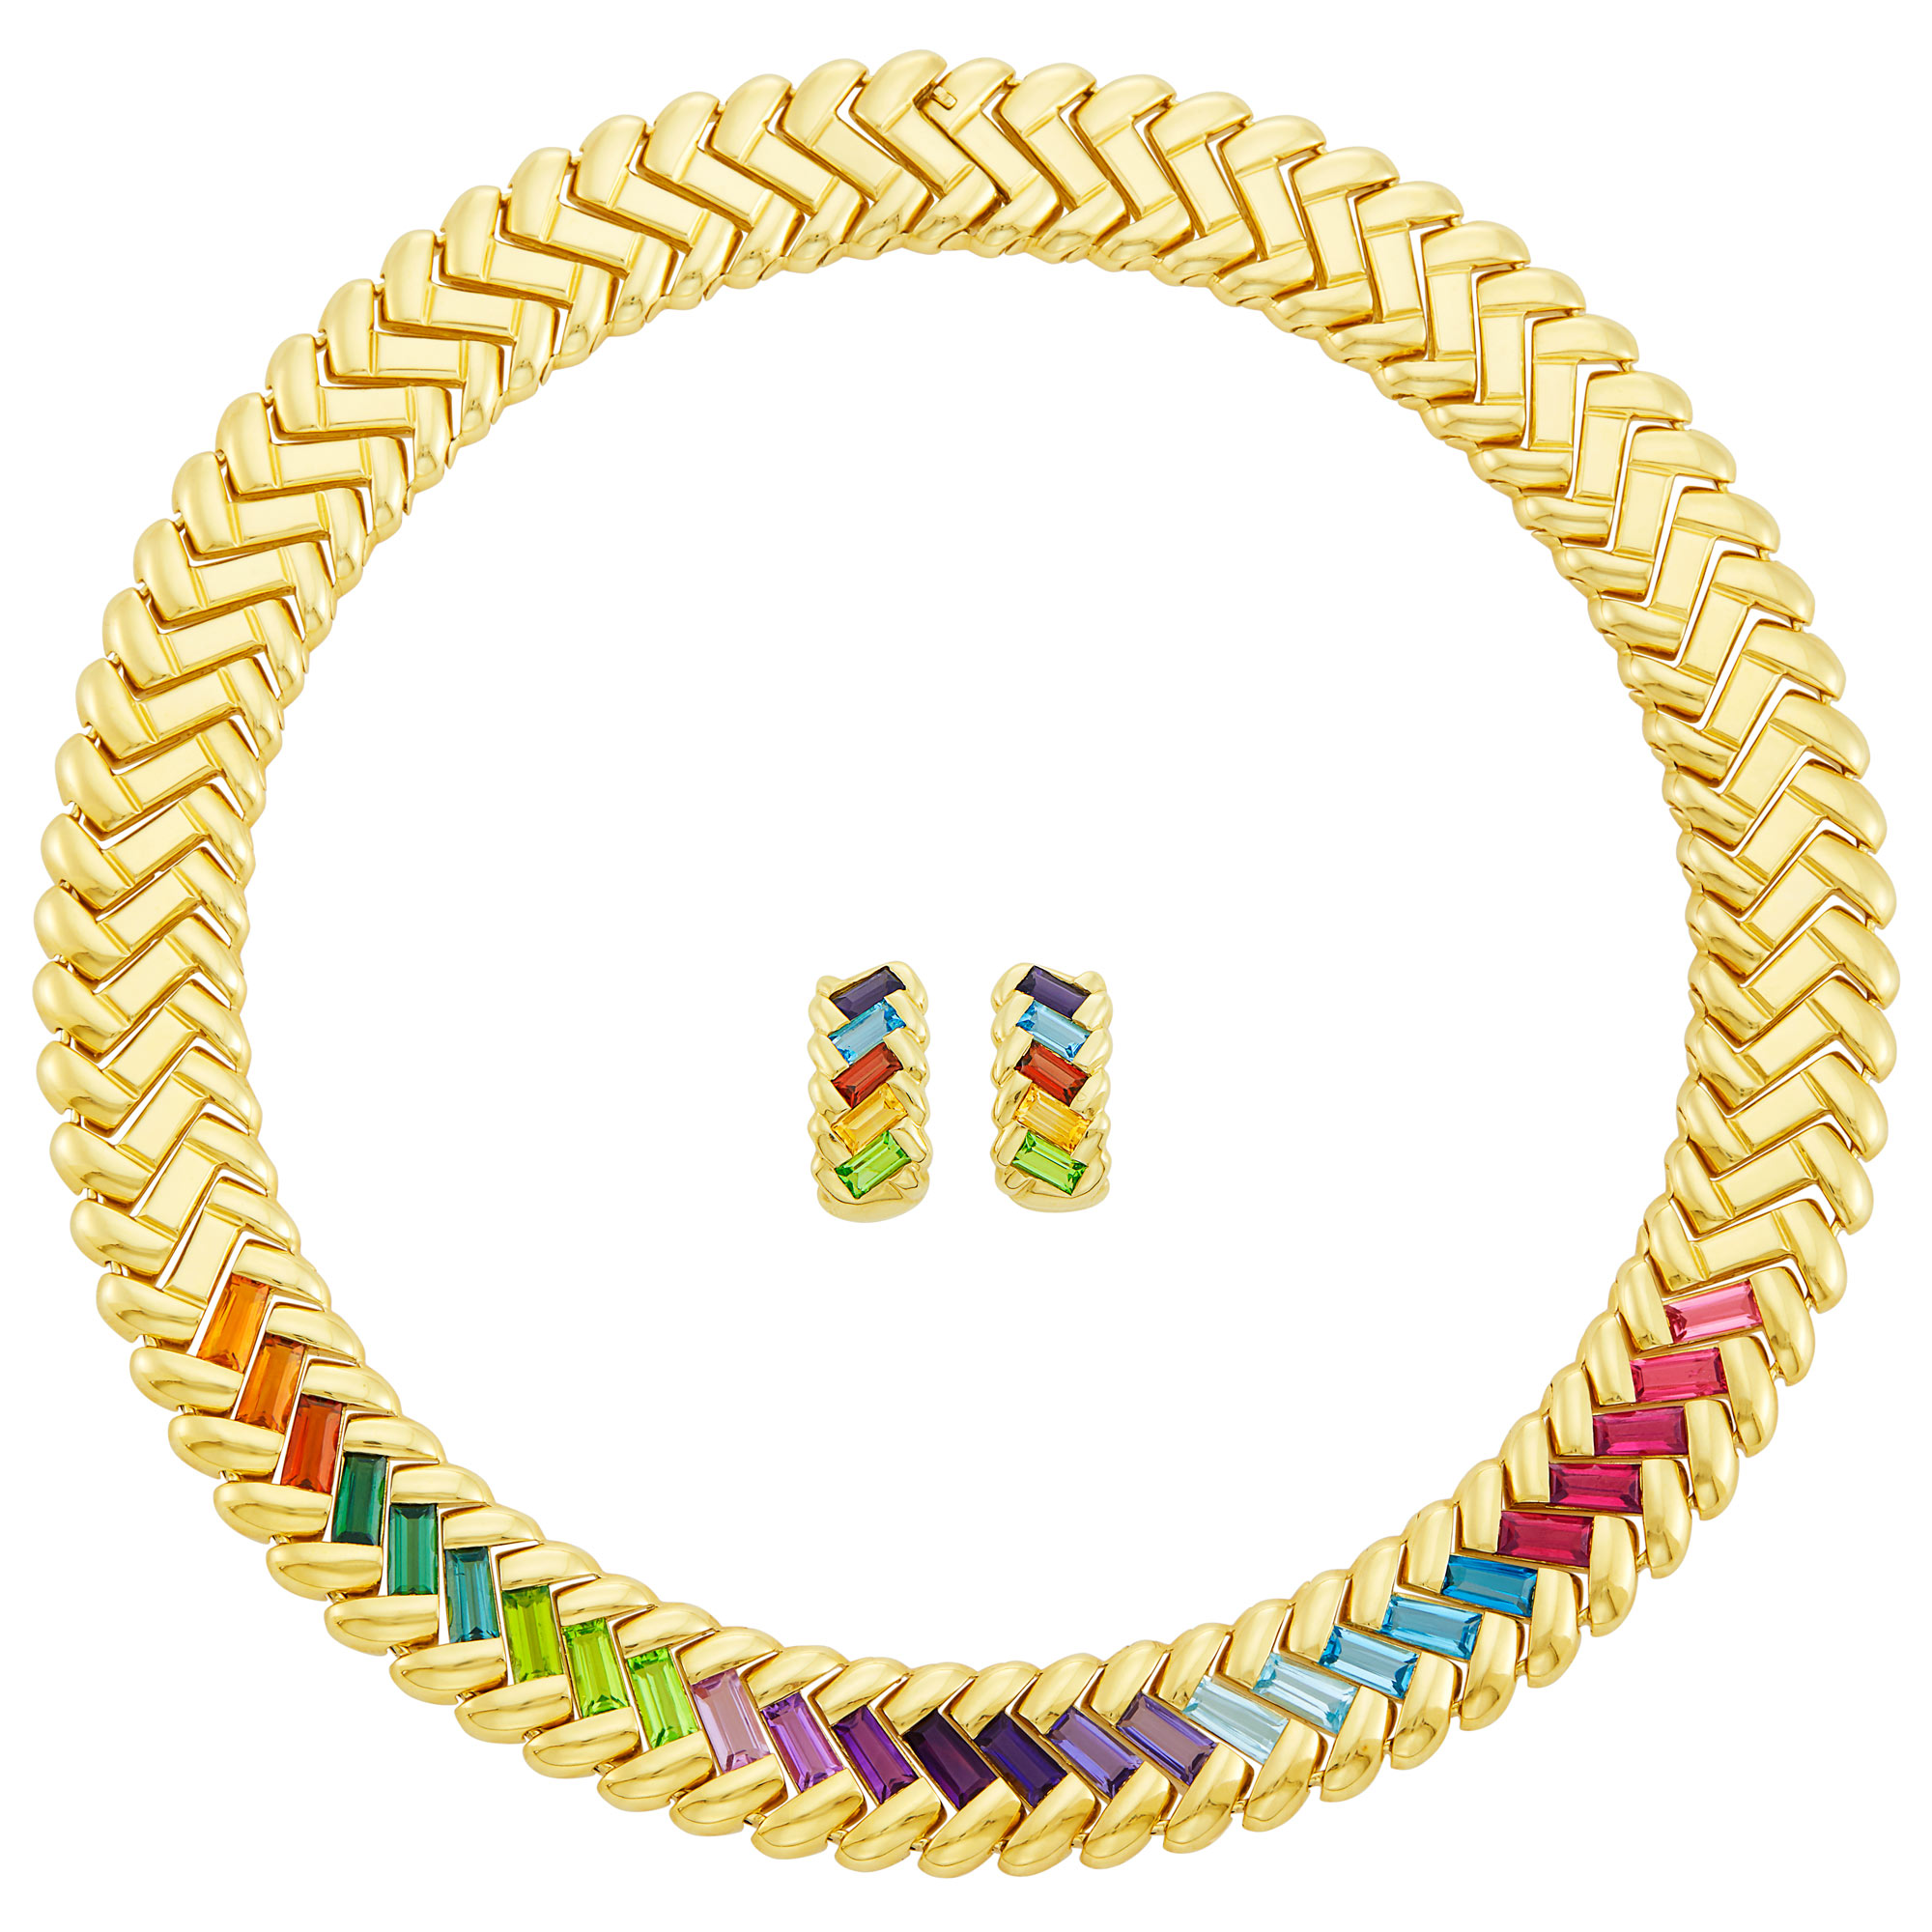 Lot image - Gold and Gem-Set Necklace and Pair of Hoop Earclips, Attributed to H. Stern